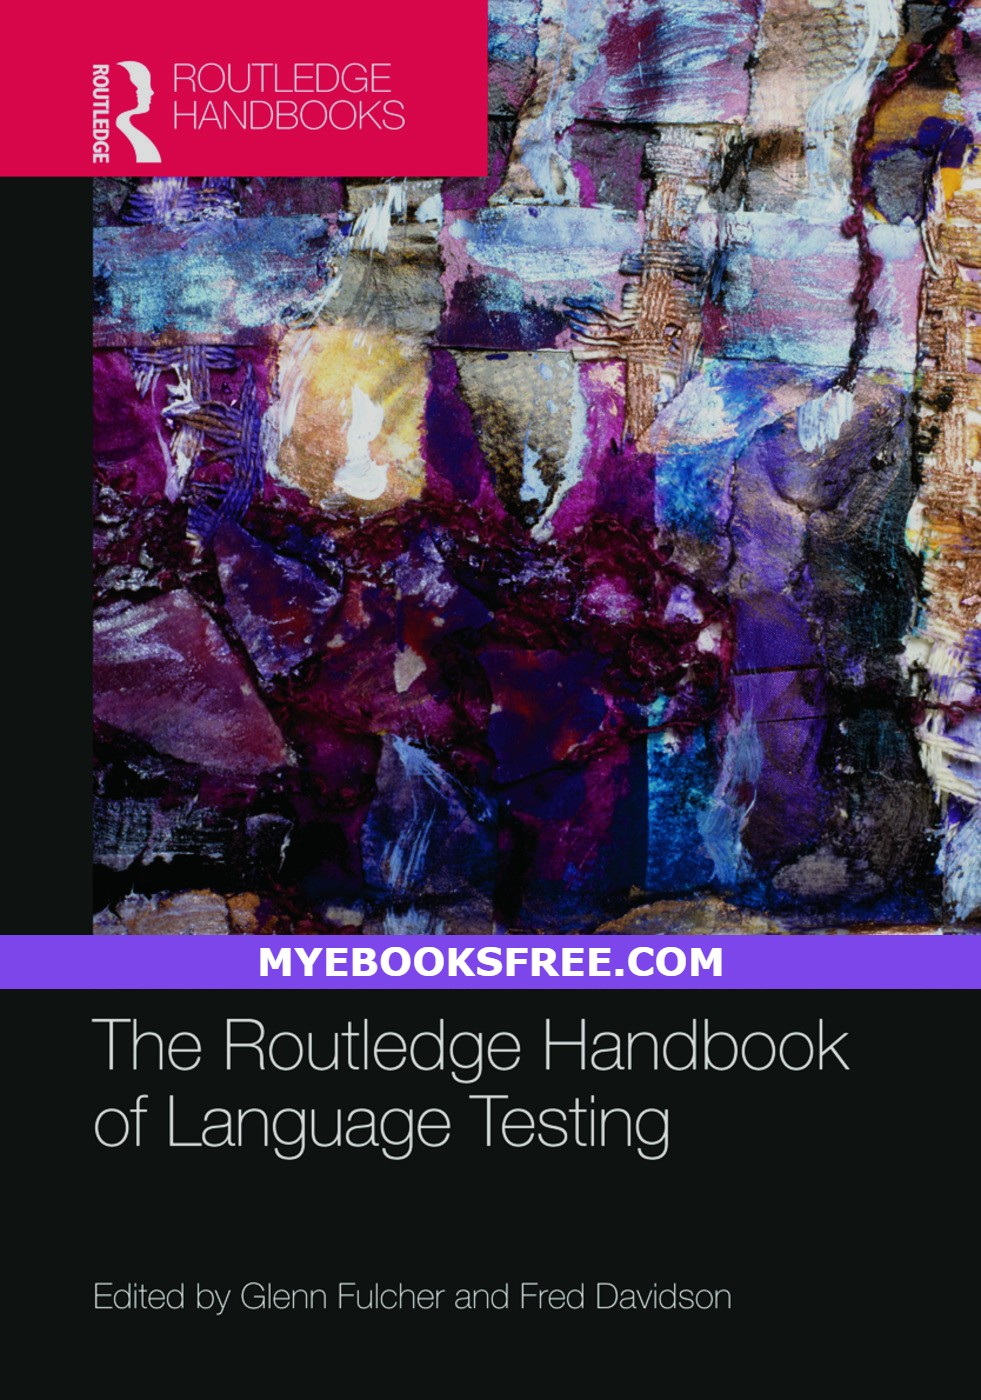 The Routledge Handbook of Language Testing PDF Book by Fulcher, Davidson Download